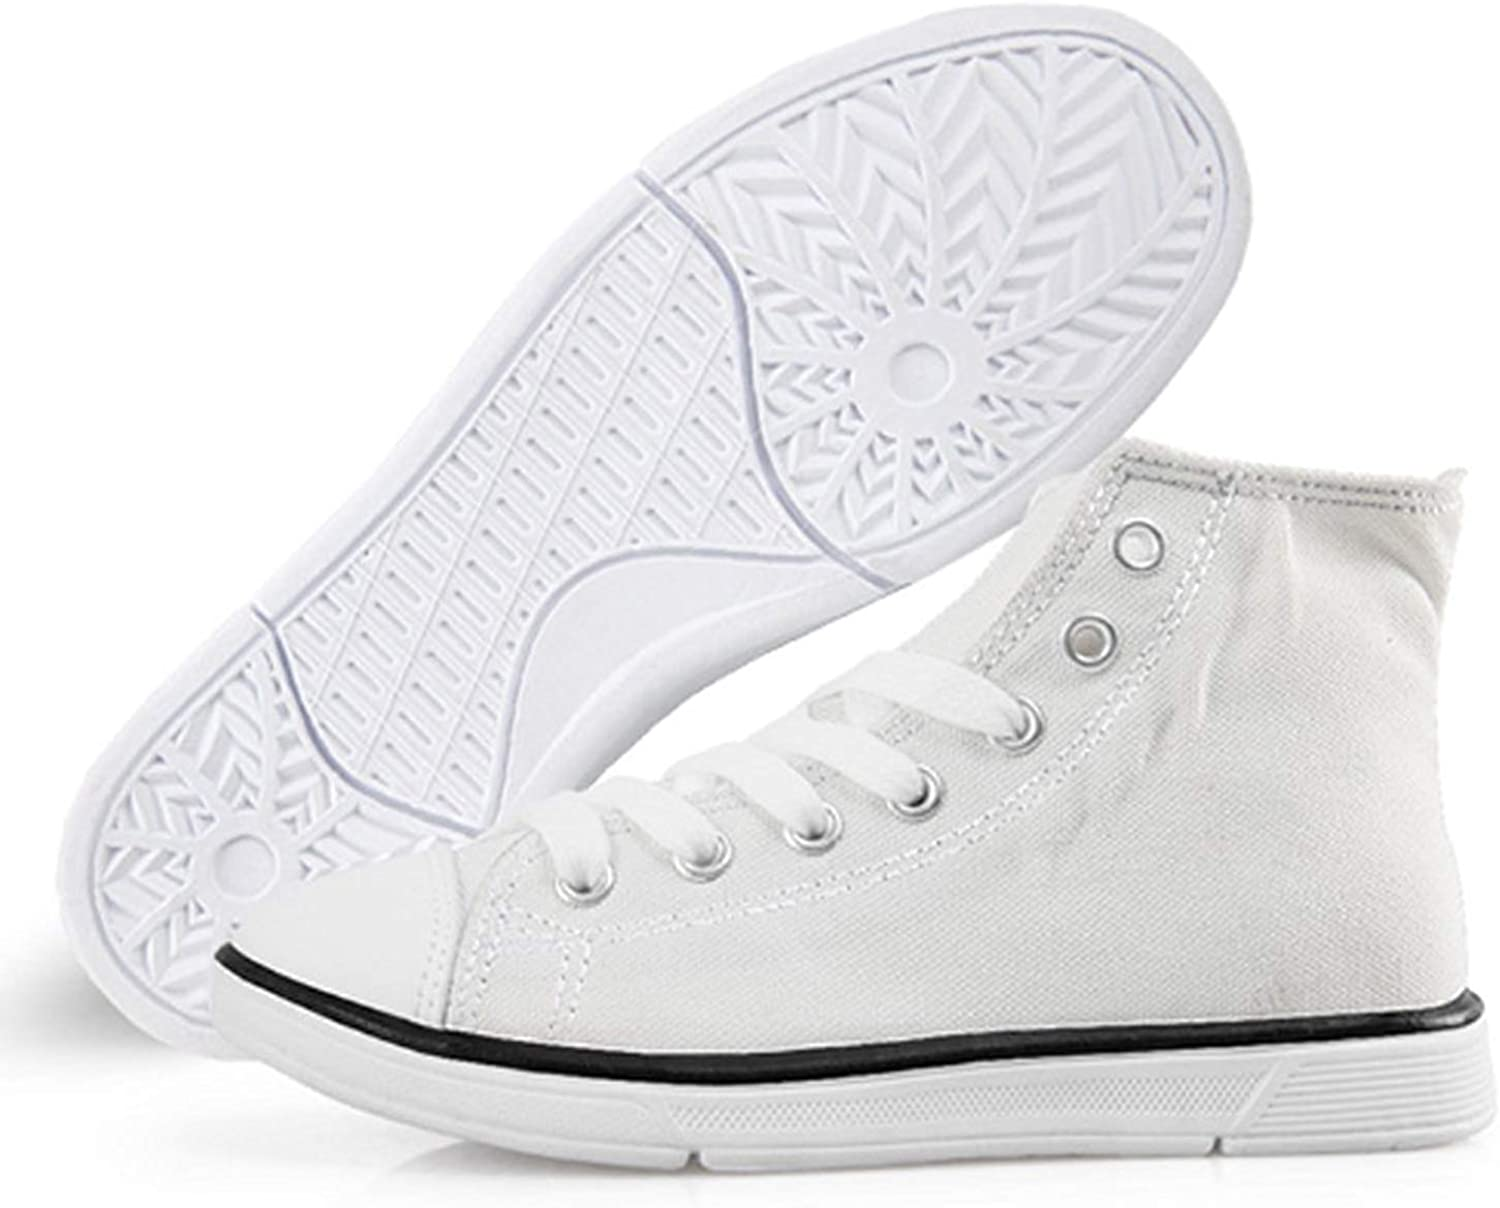 FOR U DESIGNS Kids Canvas Sneaker High Top Flats Classic School Shoes for Youth Toddler